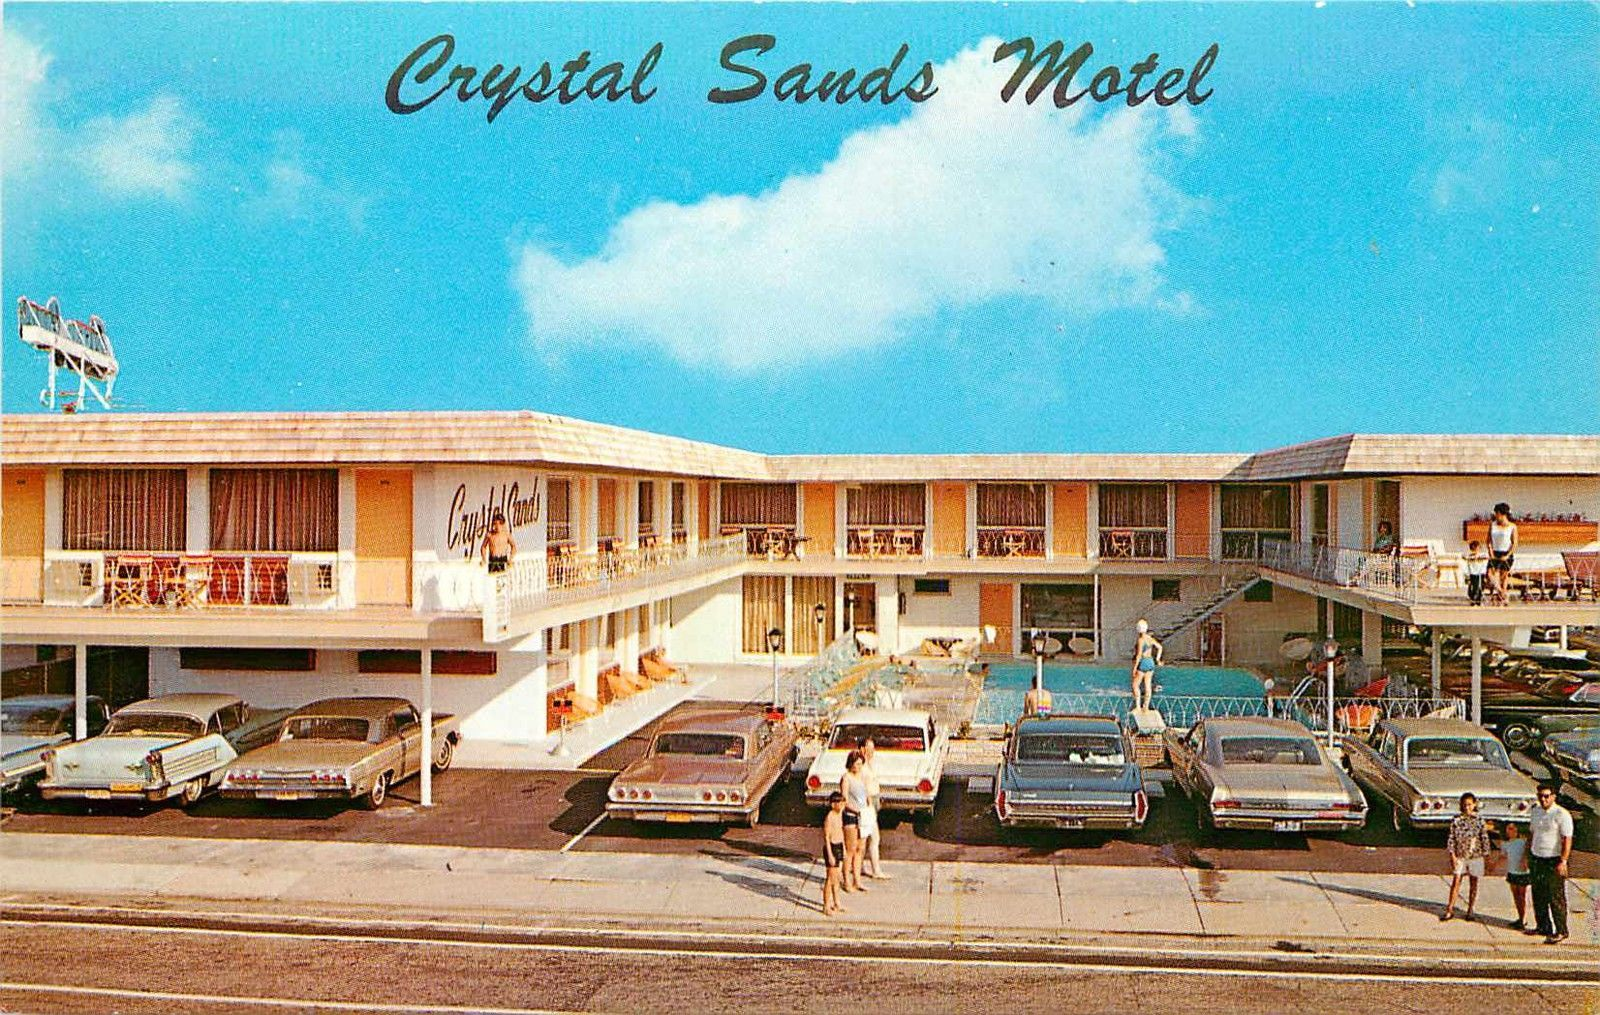 Rooms: Crystal Sands Motel, Wildwood, NJ, Circa 1965. The